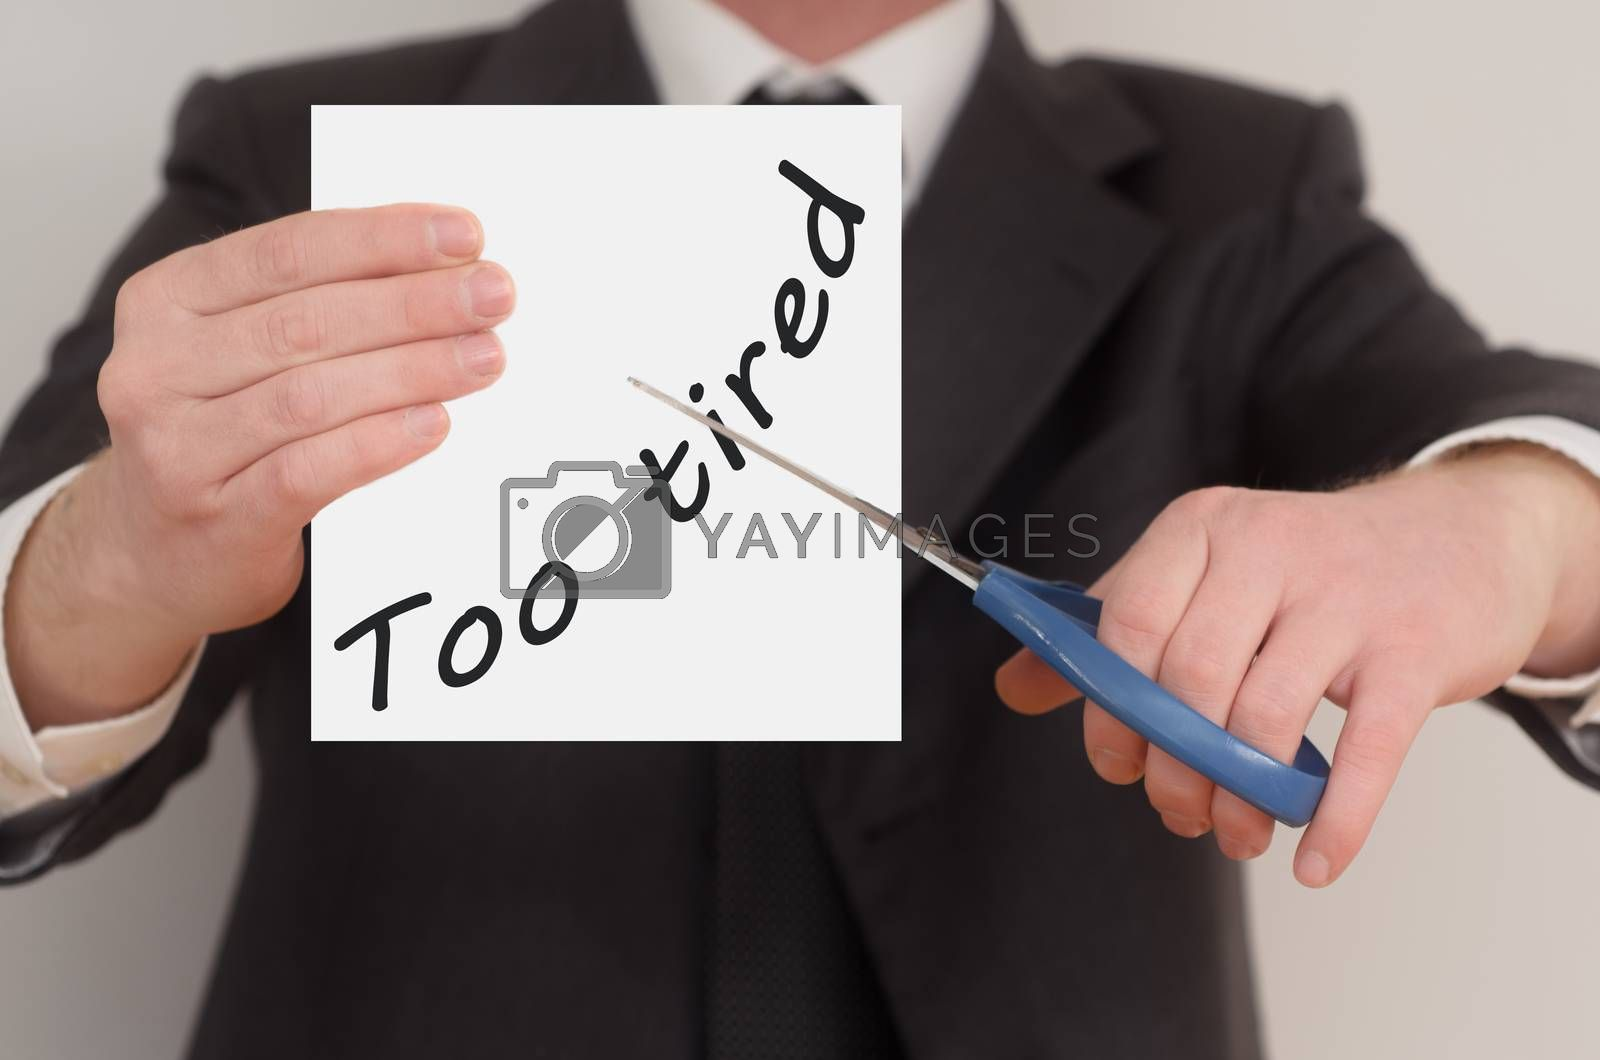 Too tired, man in suit cutting text on paper with scissors